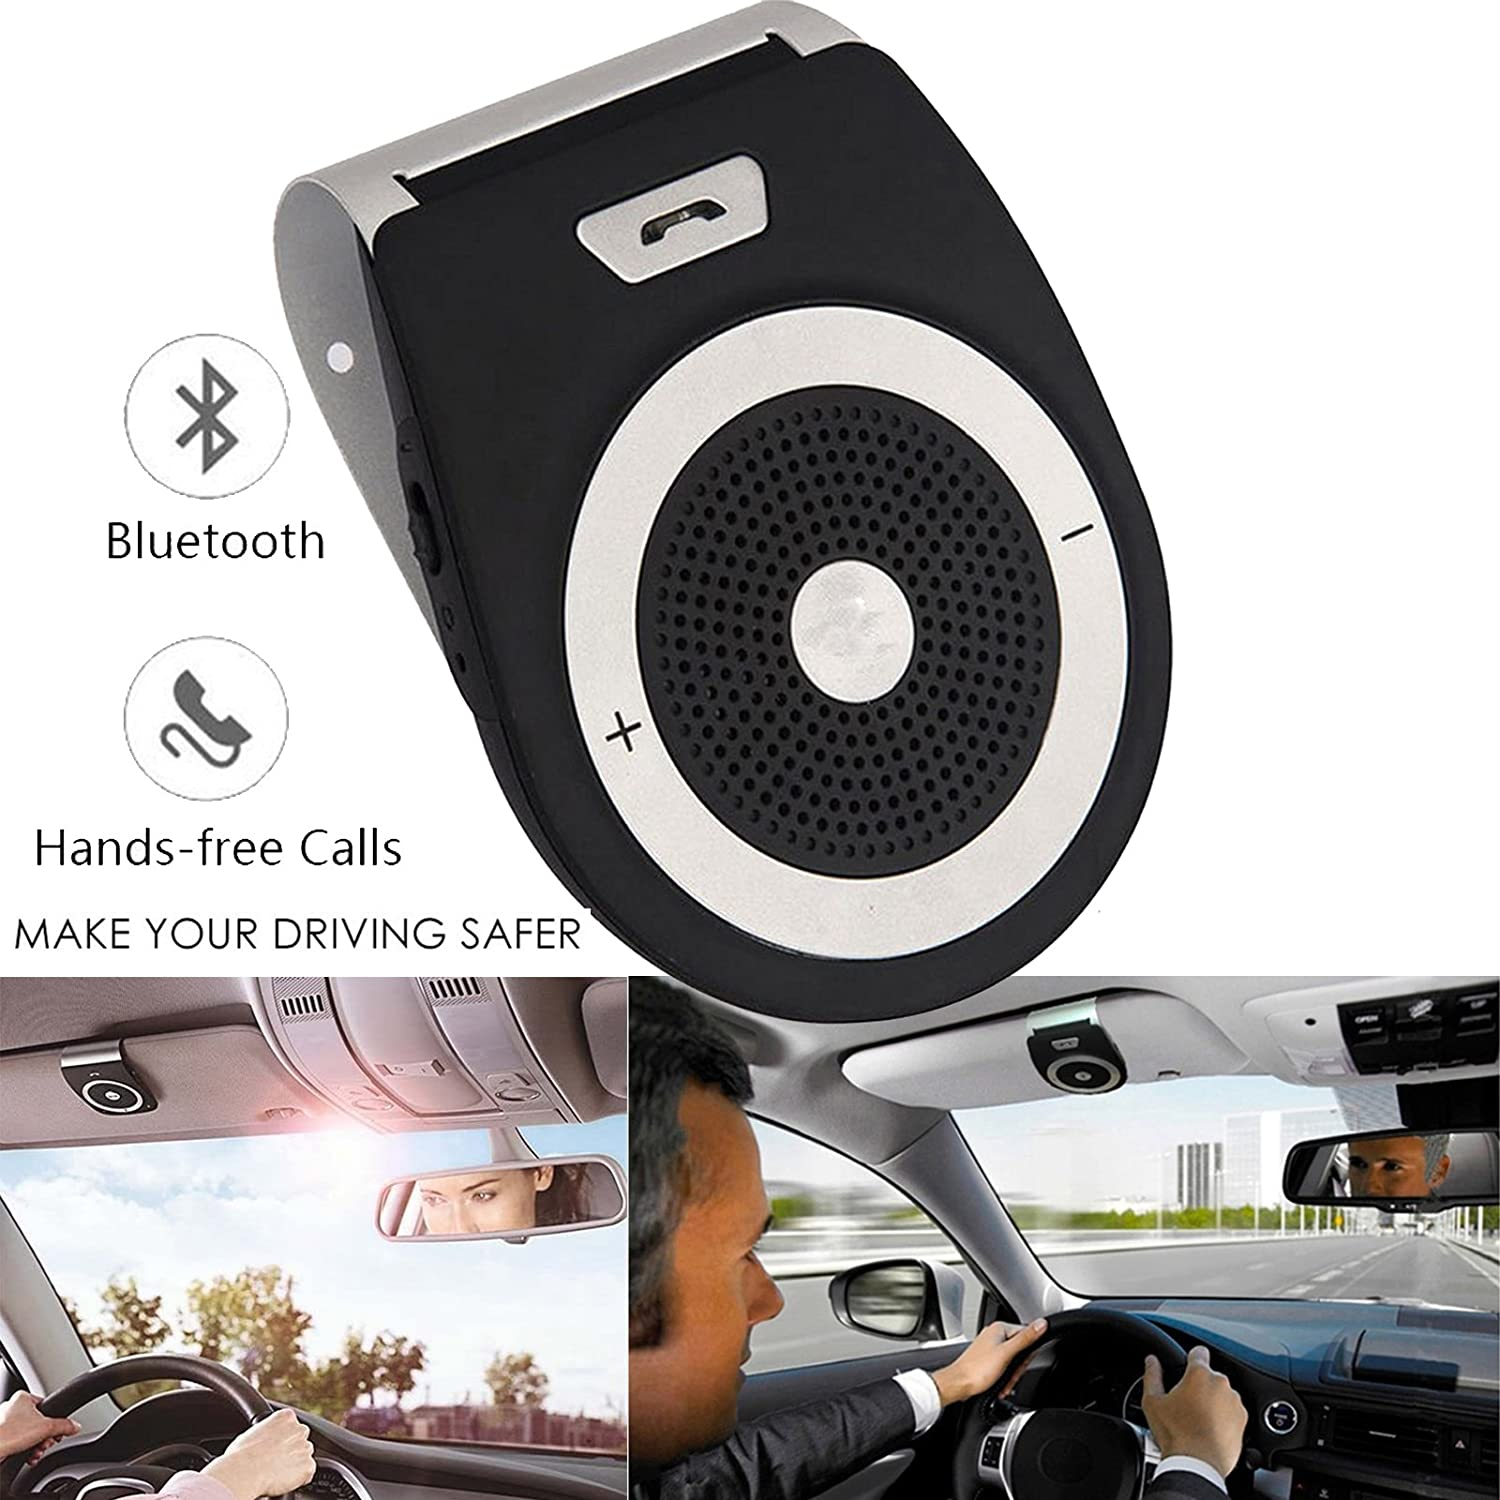 TEASTAR Bluetooth in-Car Speakerphone Handsfree Mic Multipoint Bluetooth Wireless Sun Visor Car Kit Car Charger Clip iPhone iPad Samsung HTC LG 4327116646